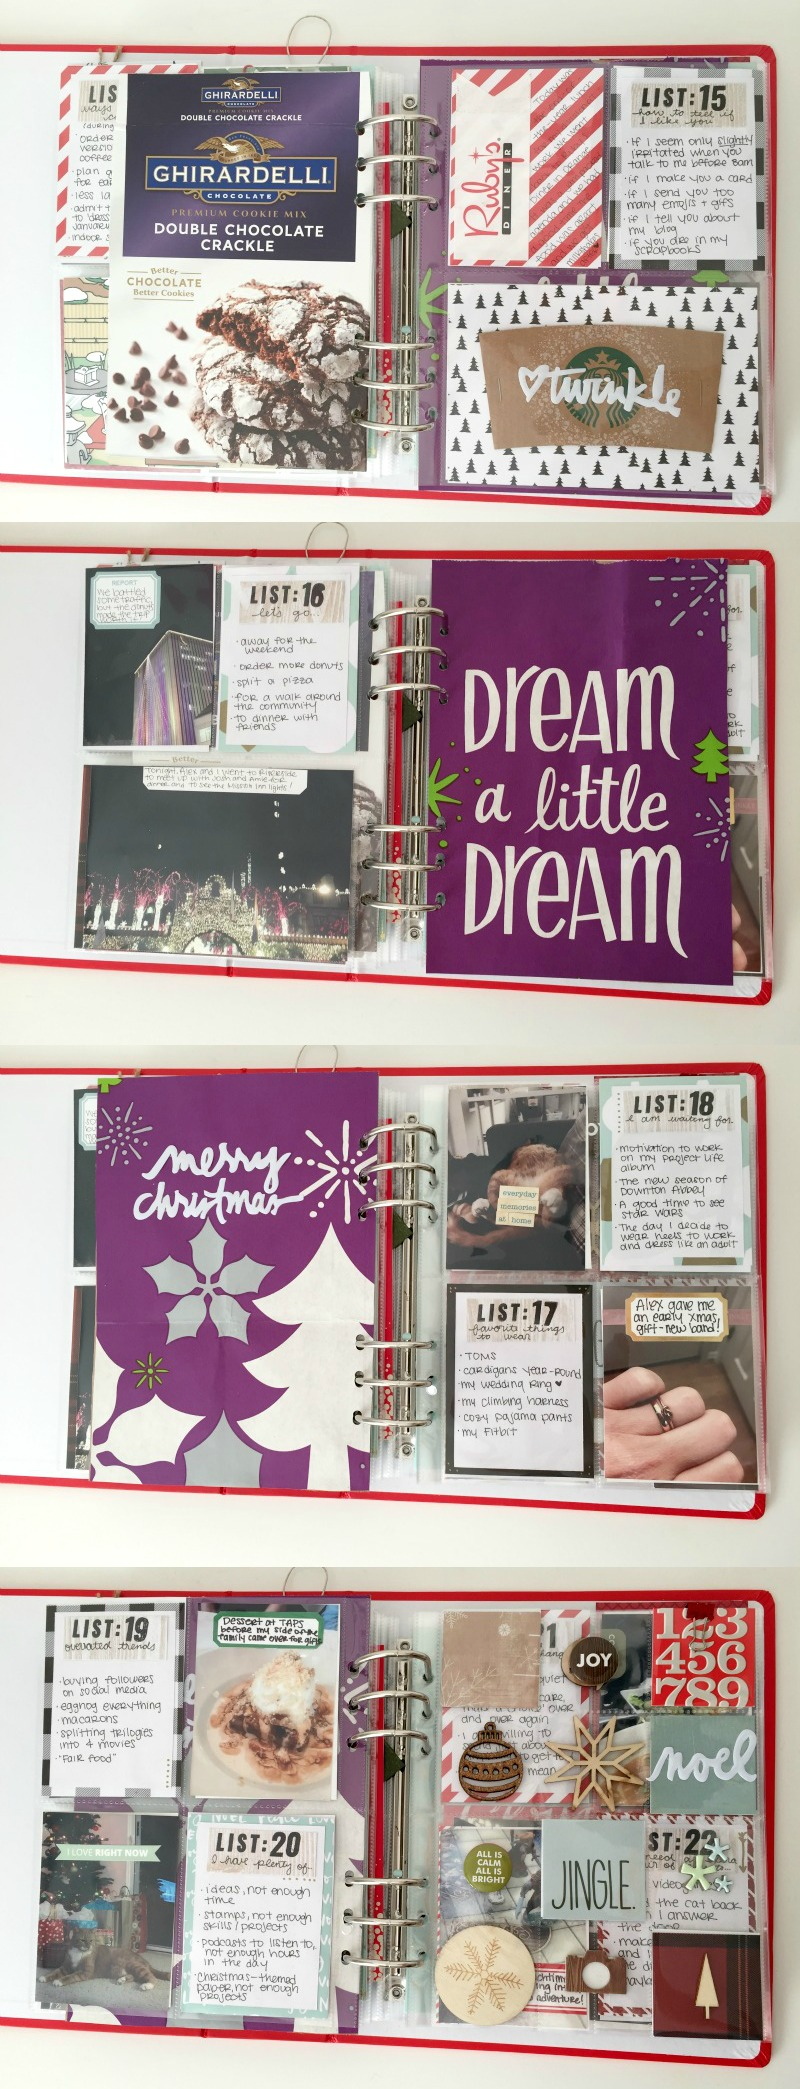 December Daily scrapbook album using pocket page sheets from Ali Edwards.